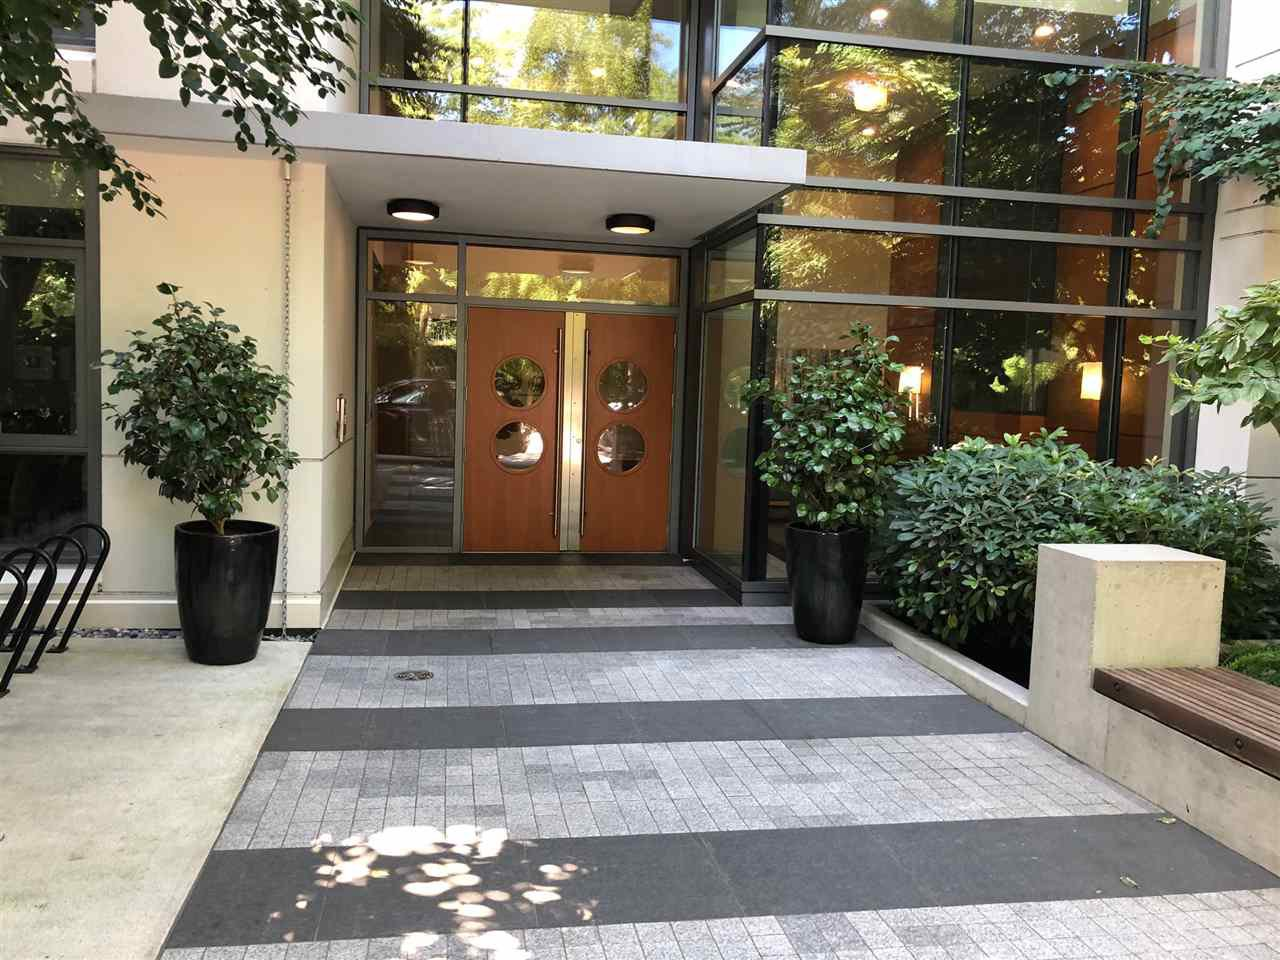 """Main Photo: 209 135 W 2ND Street in North Vancouver: Lower Lonsdale Condo for sale in """"Capstone"""" : MLS®# R2487810"""